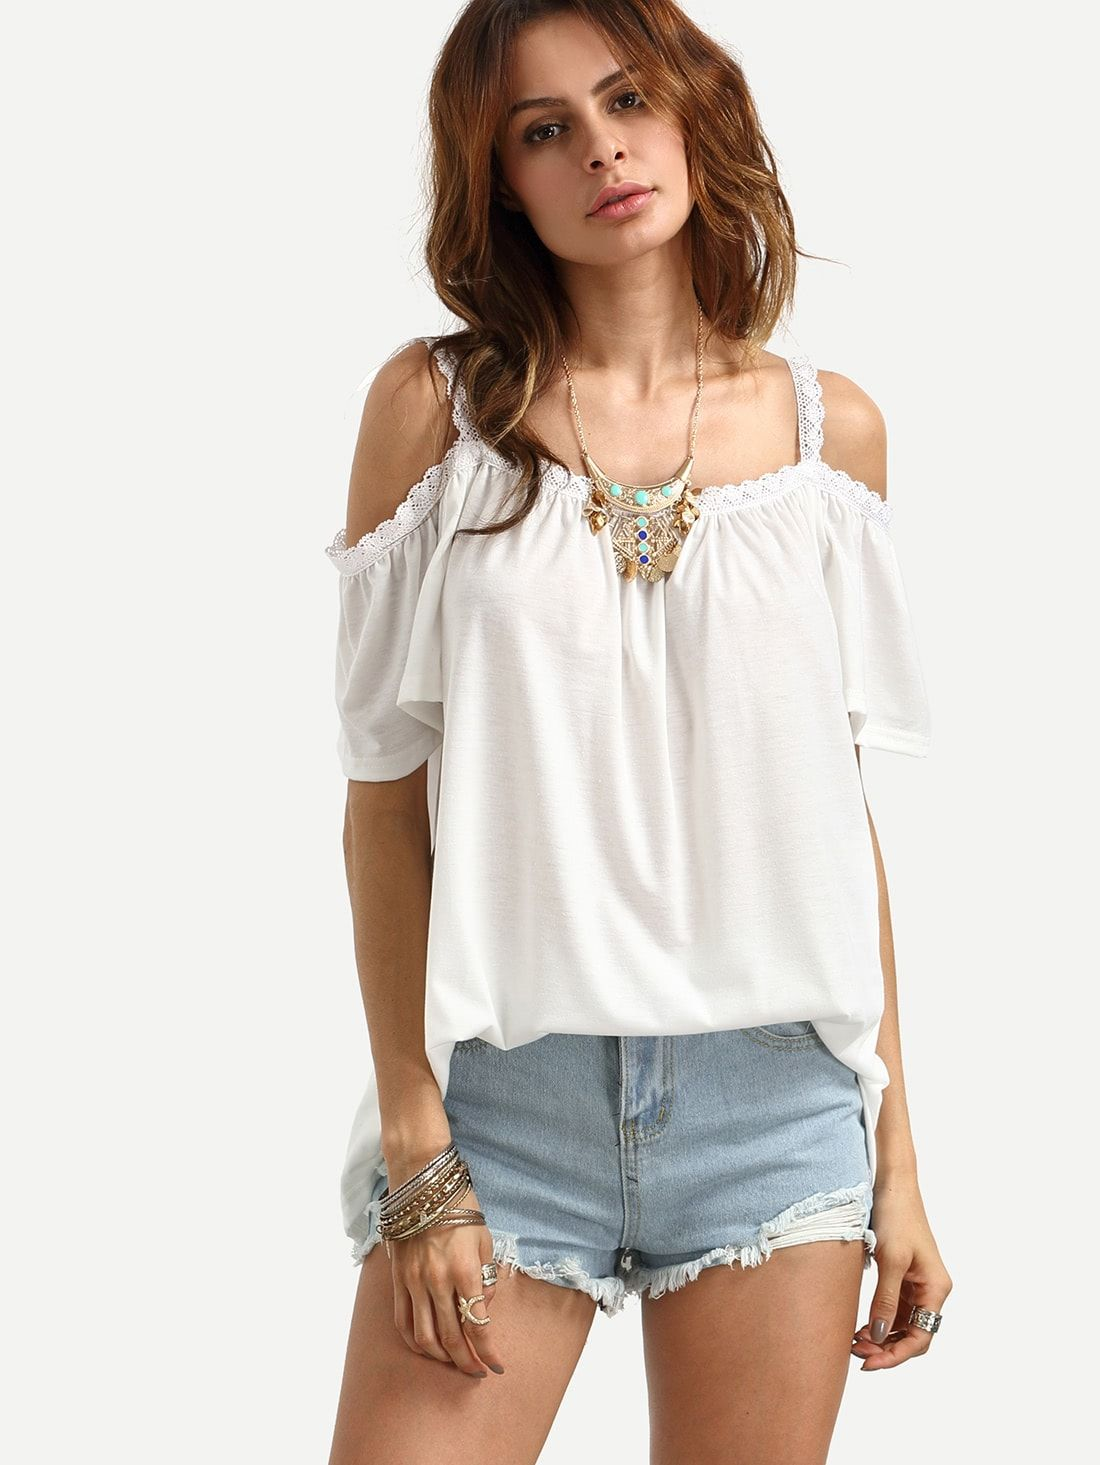 c79bdd9d1aed Young Boho Plain Top Regular Fit Straps Short Sleeve Pullovers White Open  Shoulder Lace Trim Cami